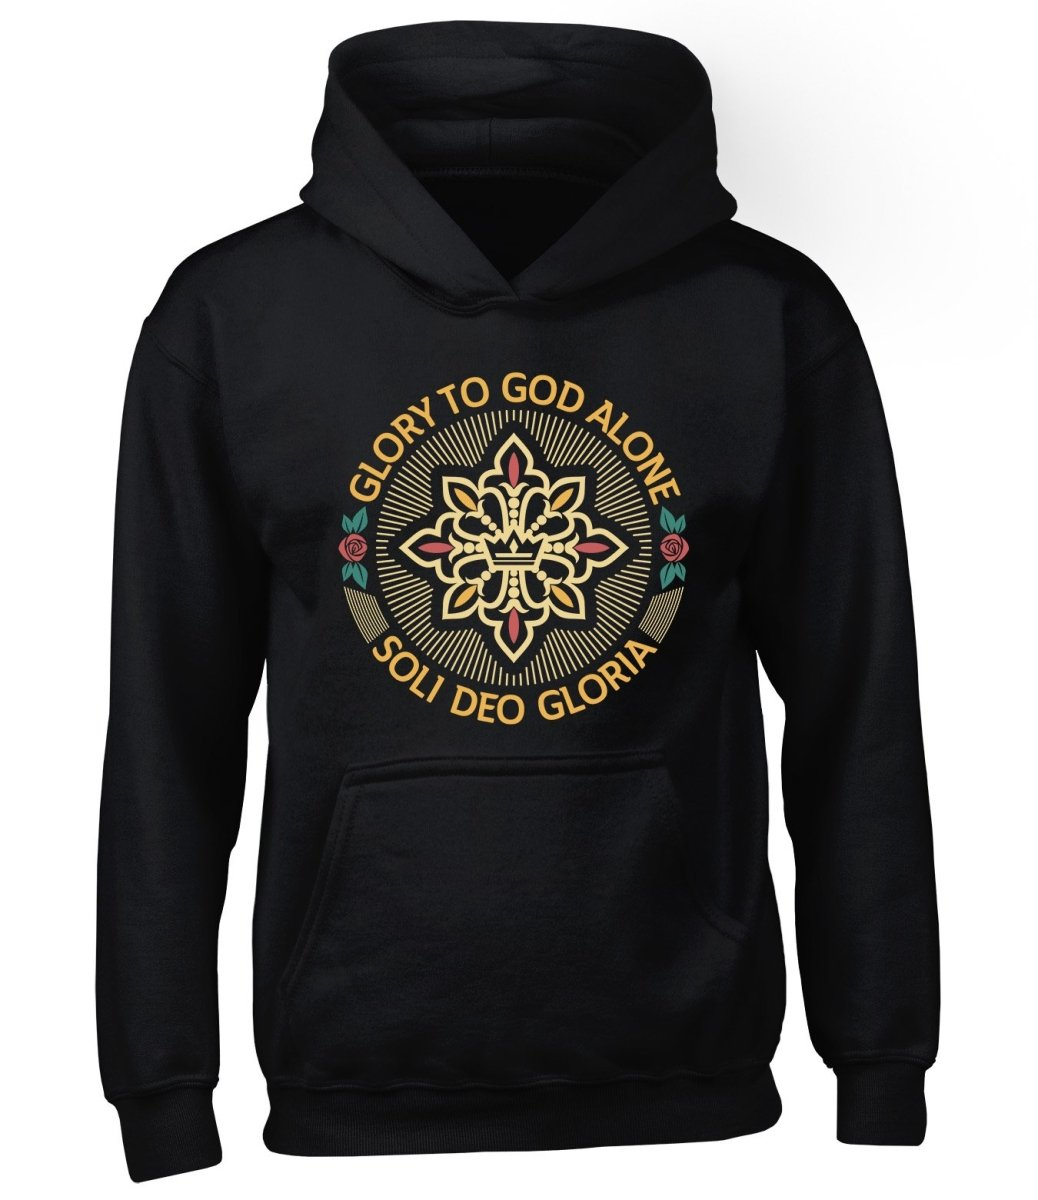 Soli Deo Gloria Seal - Hoodie - Hoodie - The Reformed Sage - reformed - reformed gifts - christian gifts - christian hoodie - christian apparel - christian decor - christian art -